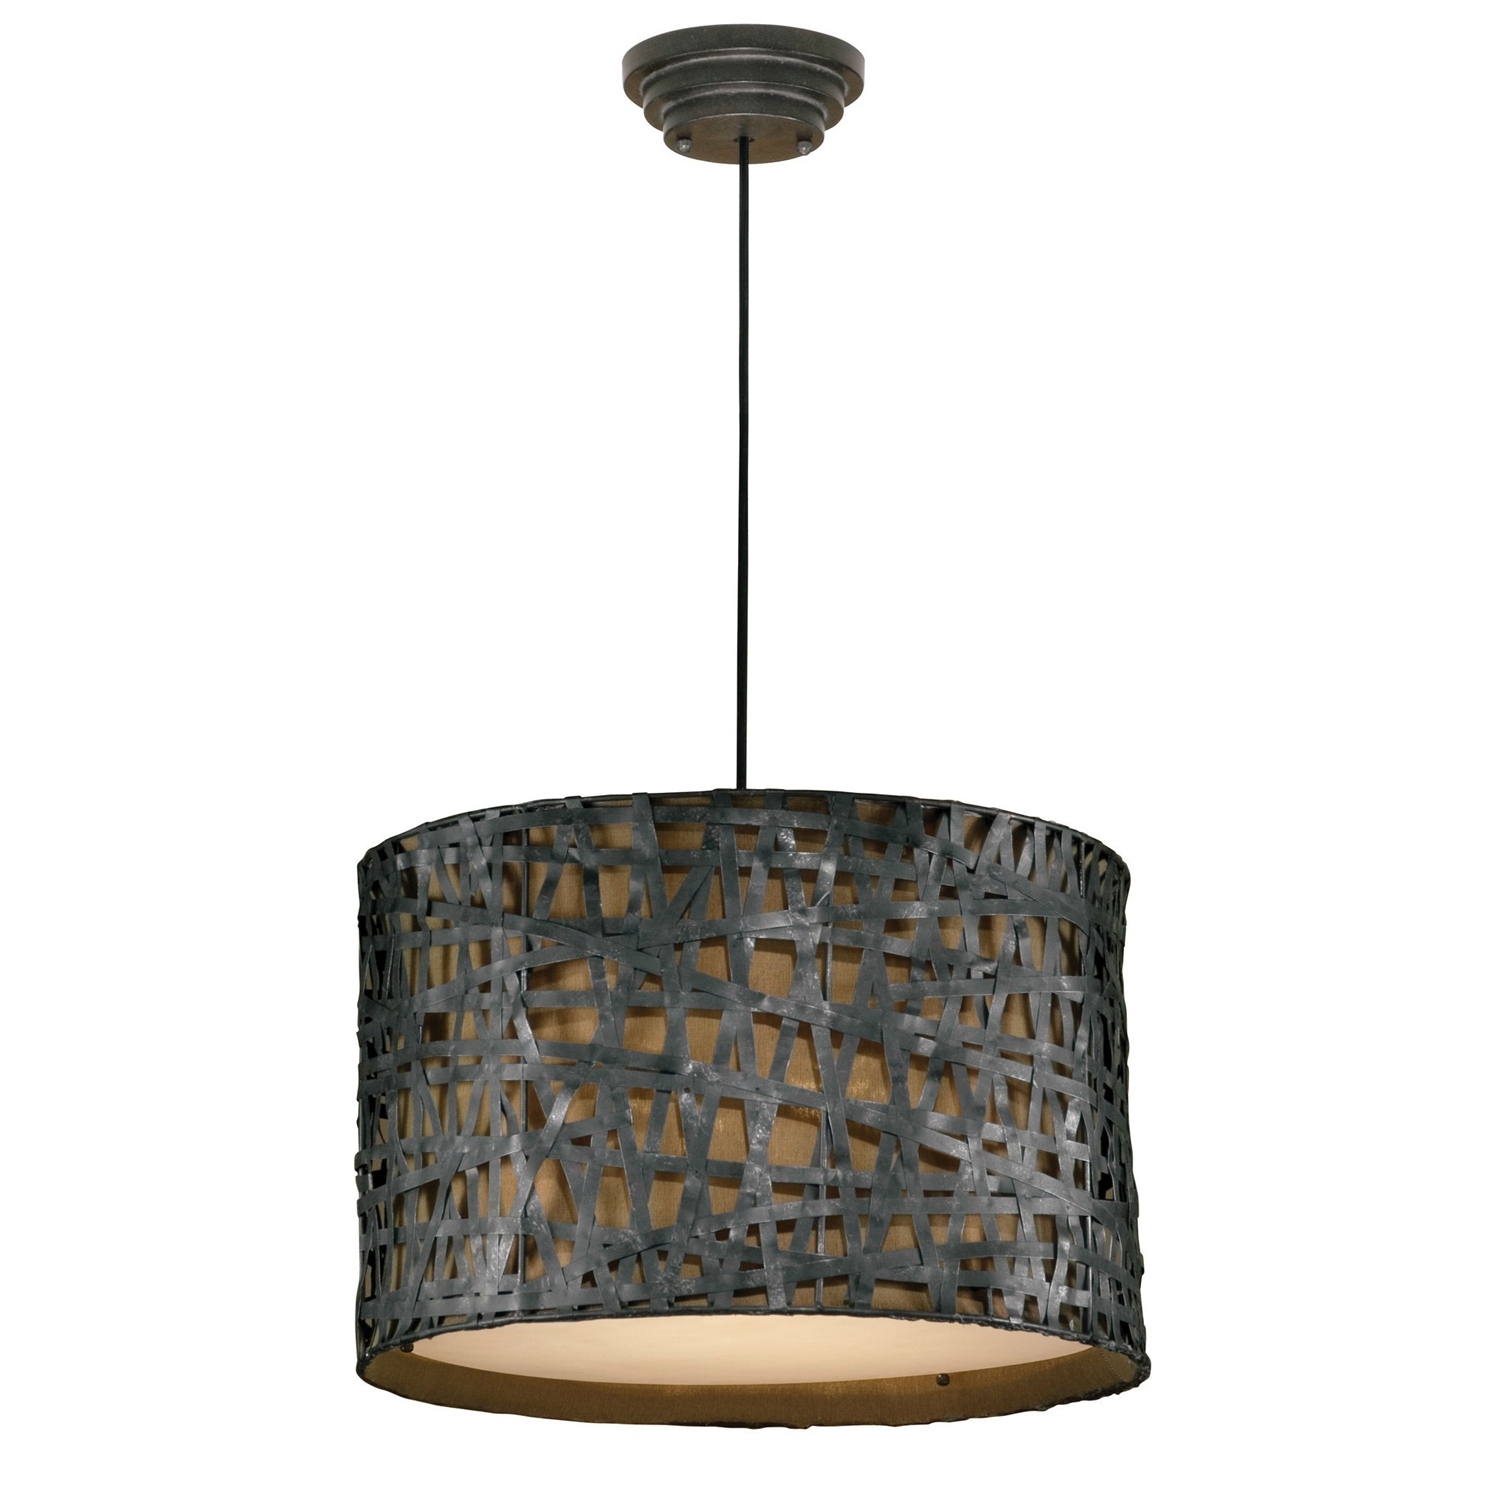 Relaxed and light, this Rust Black Modern 3-Light Drum Style Foyer Pendant Ceiling Light is a smart choice for the home that is about comfort and quiet style. The fixture will provide your home with light fixtures that are made from unique materials. Shade Material: Metal; Finish: Black; Swarovski Crystal: No; Lens Included: No; Bulb Type: Incandescent; Bulb Shape: A; Transformer Required: Yes; Number of Lights: 3; Number of Tiers: 1; Swag Light: No; Bulb Included: No; Dimmable: Yes. Connection: Junction box; Voltage: 110 Volts (V); Wattage per Bulb: 60 Watts (W); Product Care: Dust with a clean, soft, dry cloth. Do not use abrasives. Country of Manufacture: China.  Assembly Required: Yes; Product Warranty: 1 year; Energy Star Compliant: No; Damp, Dry or Wet Location Listed: Dry; UL Listed: Yes; cUL Listed: Yes.